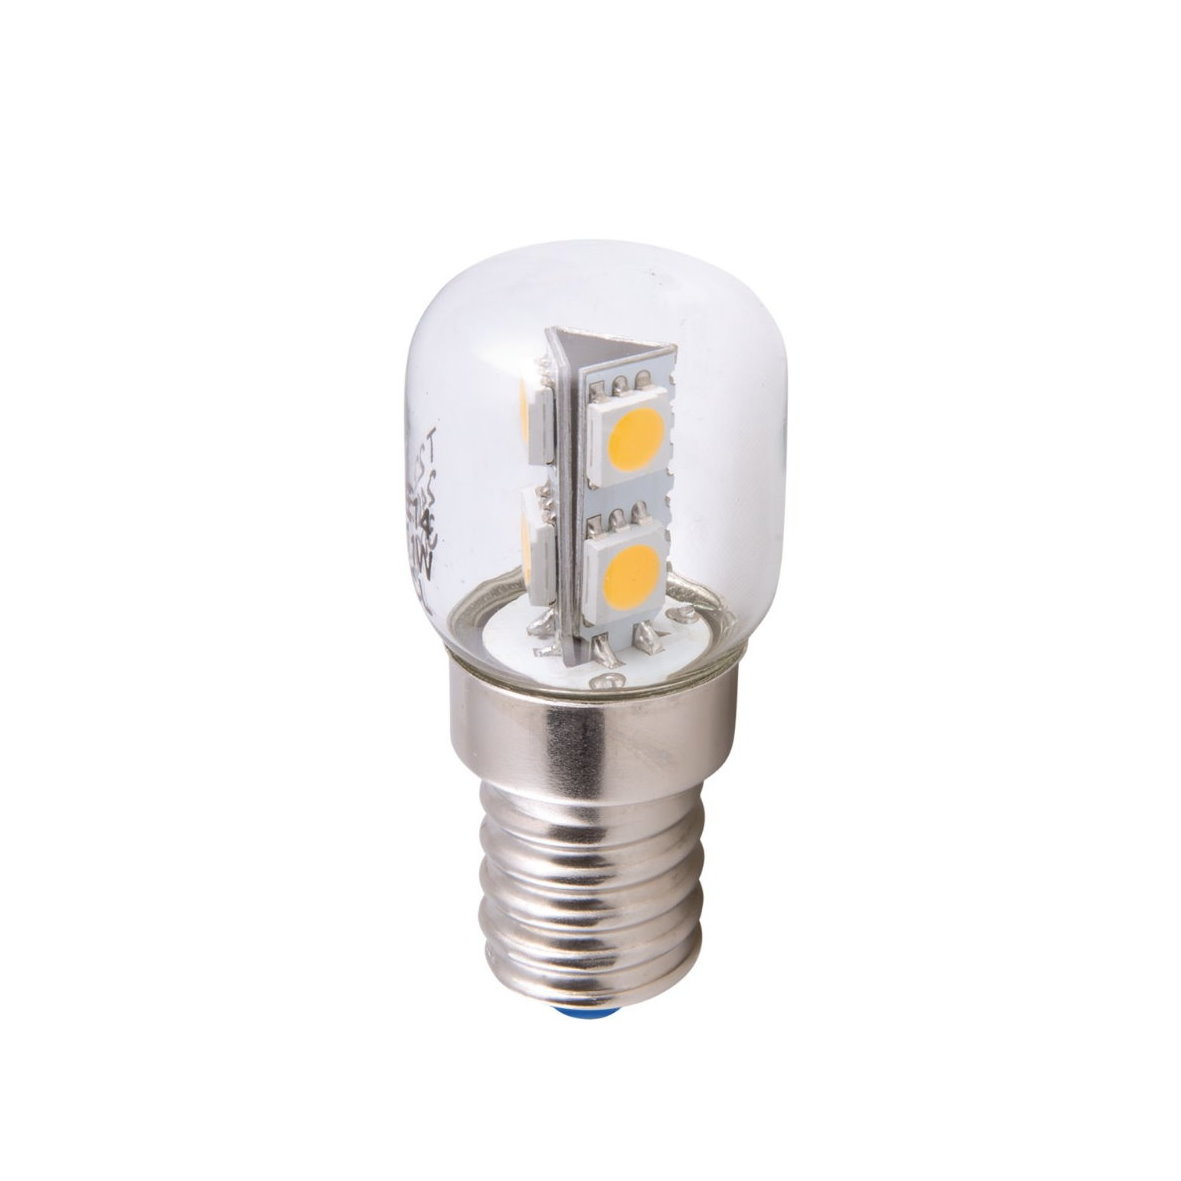 smd led illuminant mini e14 candle bulb compact small spotlight 50 85mm ebay. Black Bedroom Furniture Sets. Home Design Ideas